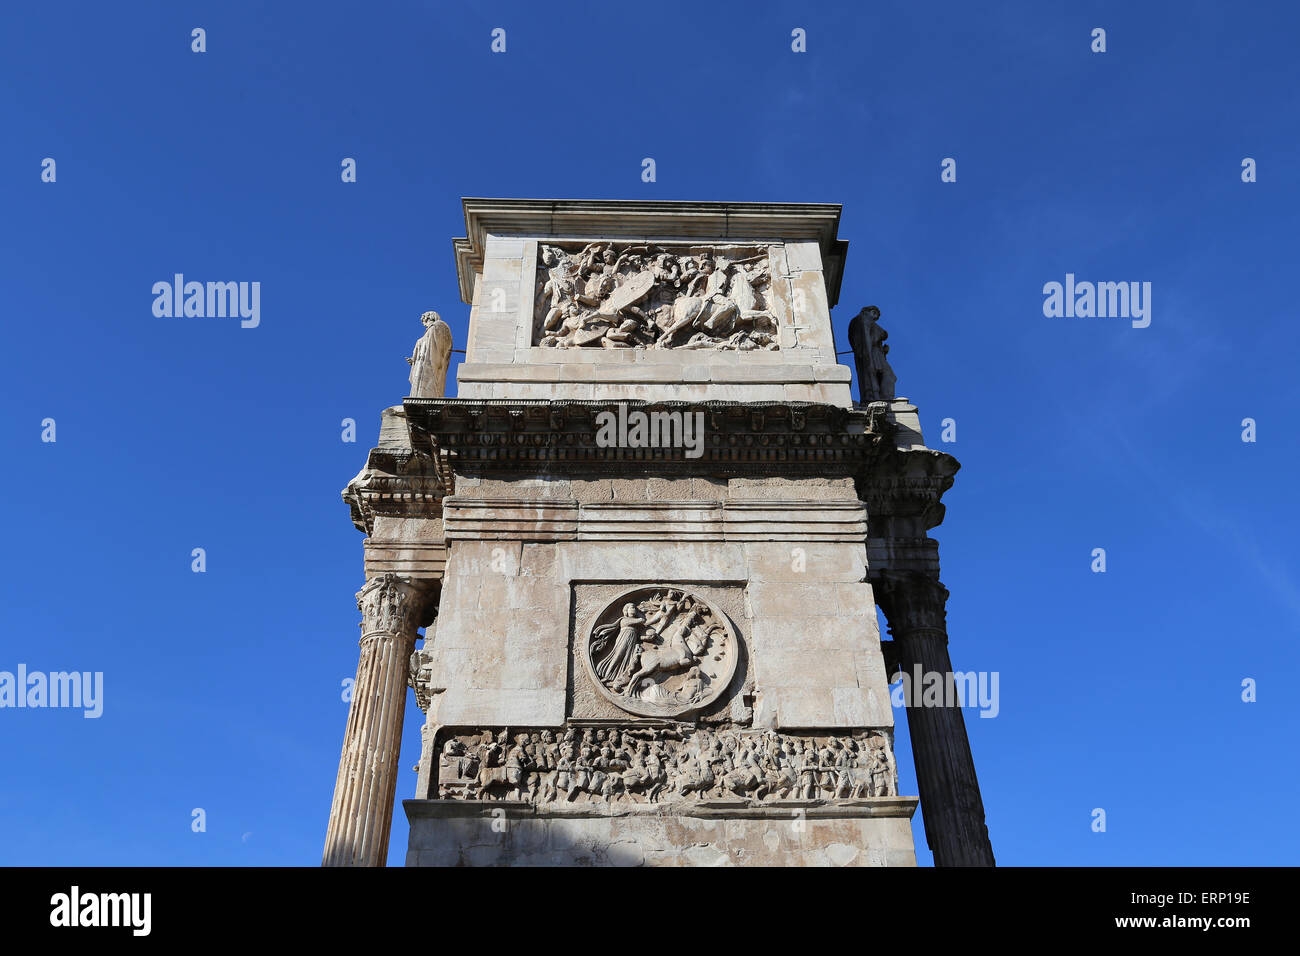 Italy. Rome. Arch of Constantine. 312 AD. Triumphal arch. Erected to celebrate Constantine's victory over Maxentus. - Stock Image